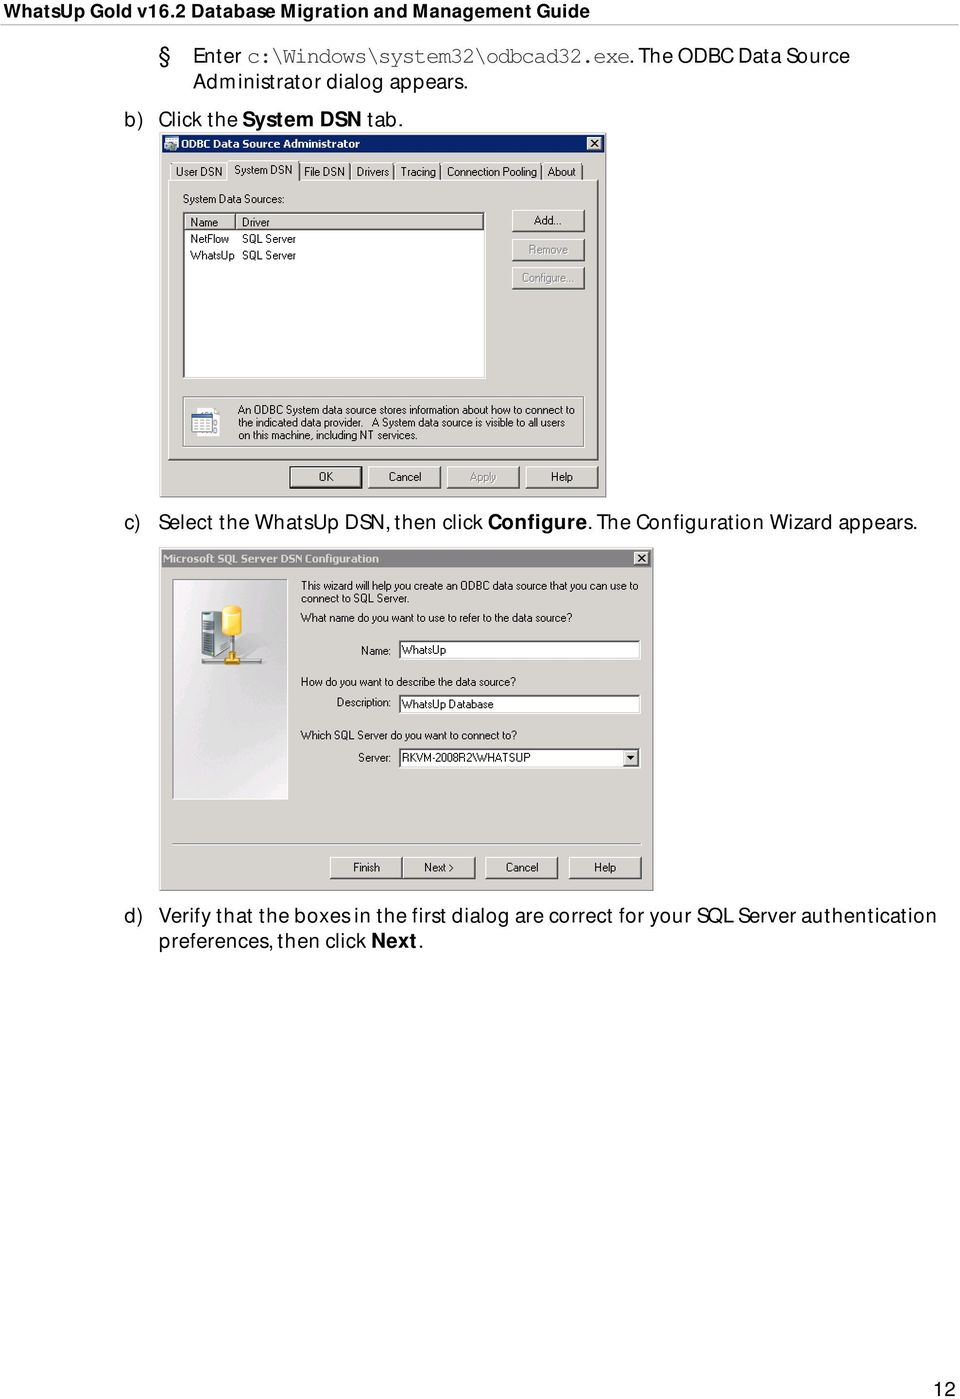 c) Select the WhatsUp DSN, then click Configure. The Configuration Wizard appears.